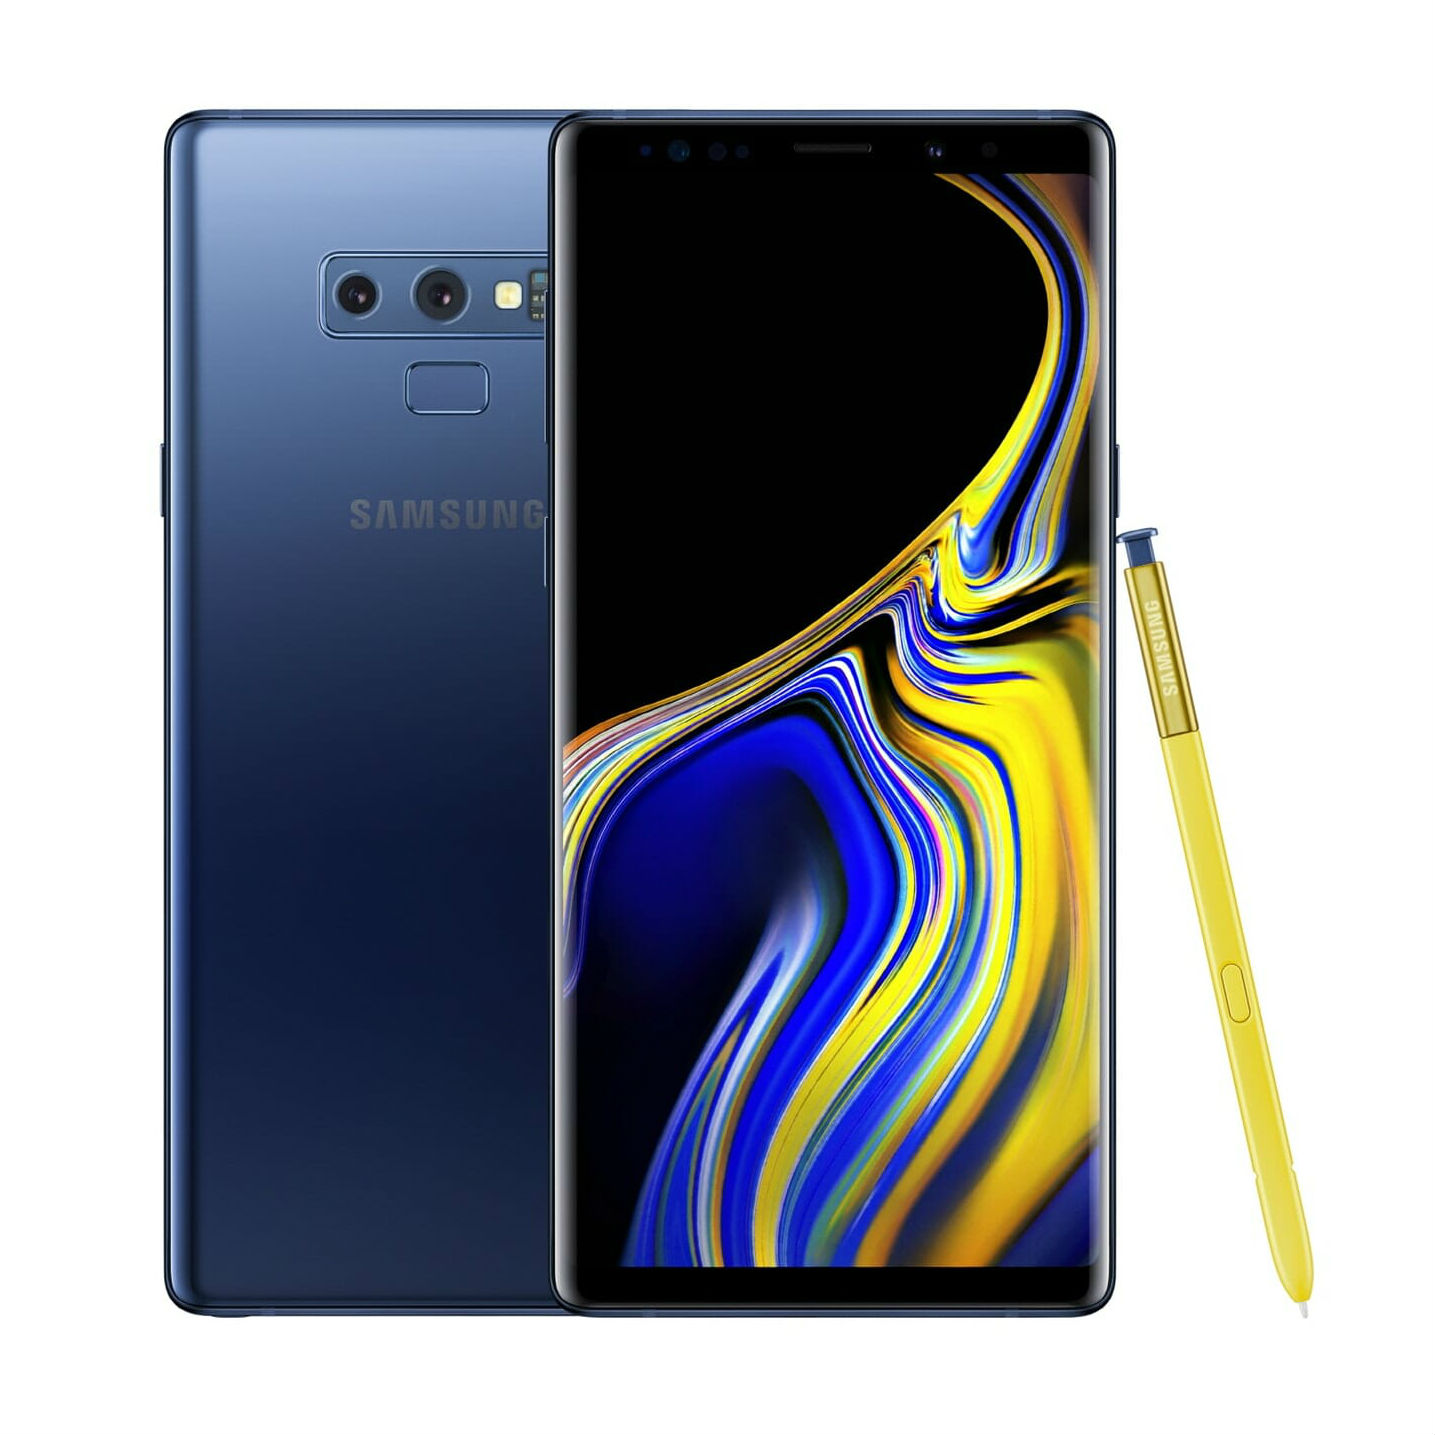 Search and compare best prices of Samsung Galaxy Note 9 N9600 6GB/128GB Dual Sim SIM FREE/ UNLOCKED - Ocean Blue in UK